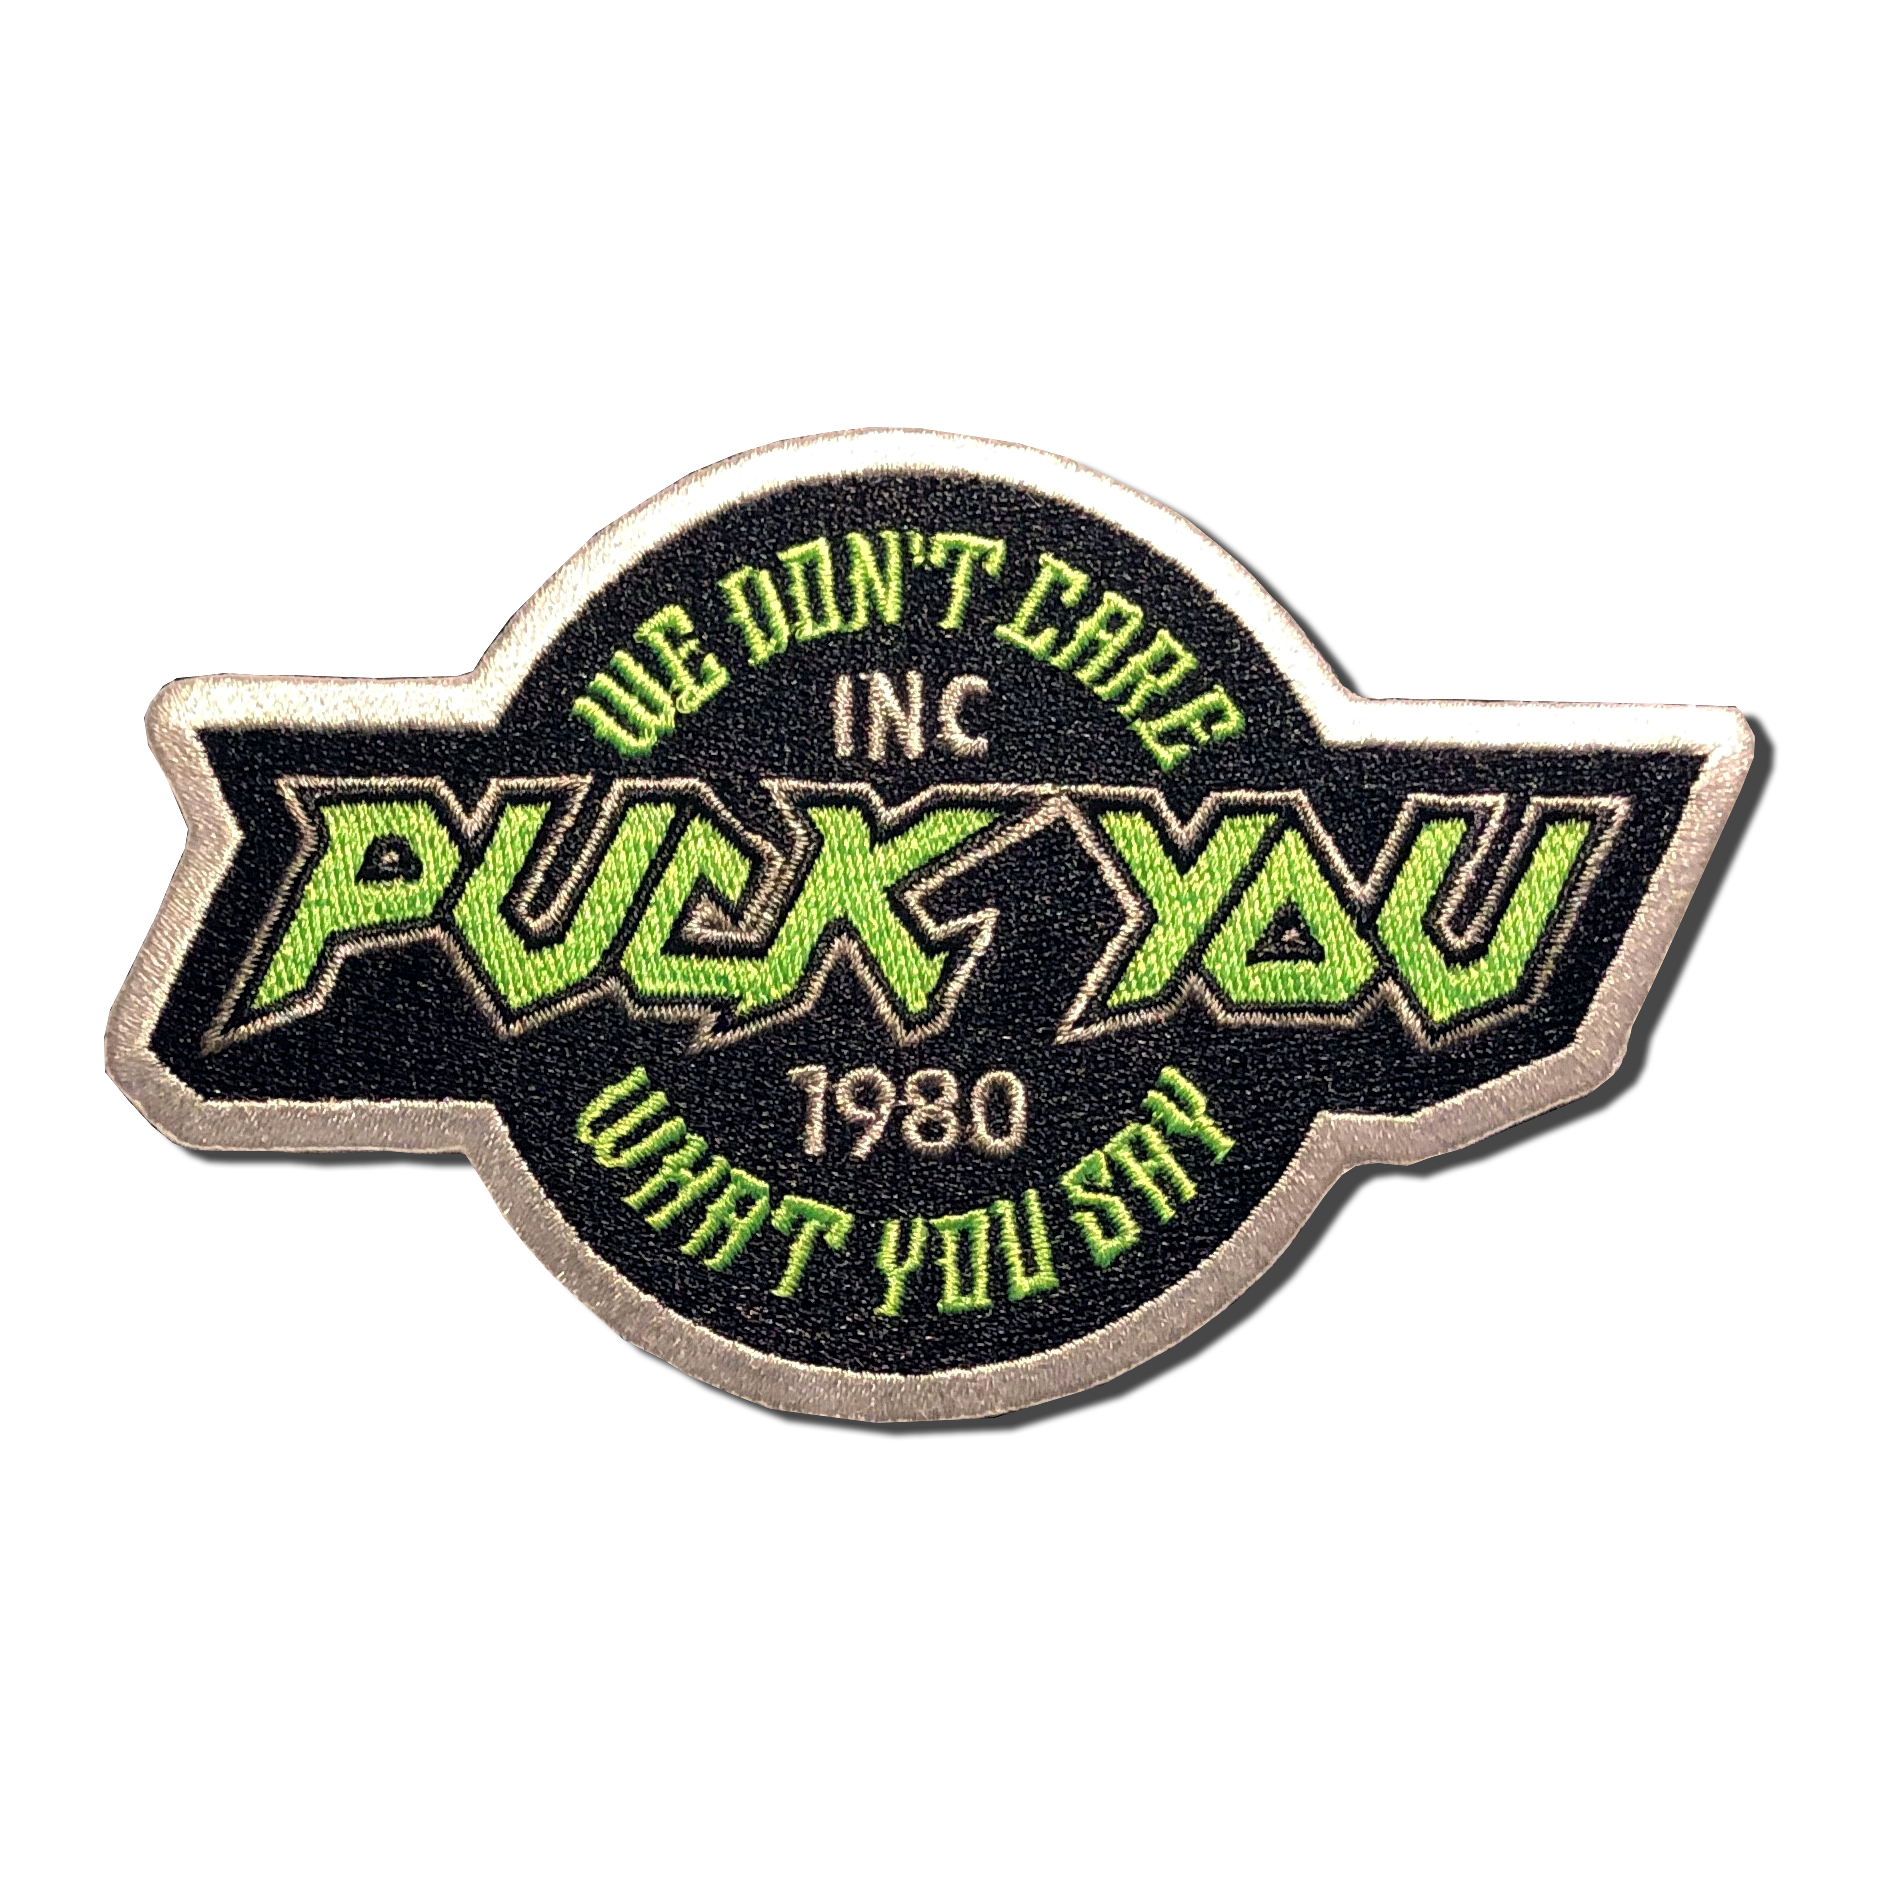 Puck You embroidered patch. We don't care what you say. A-B Emblem photo gallery image.